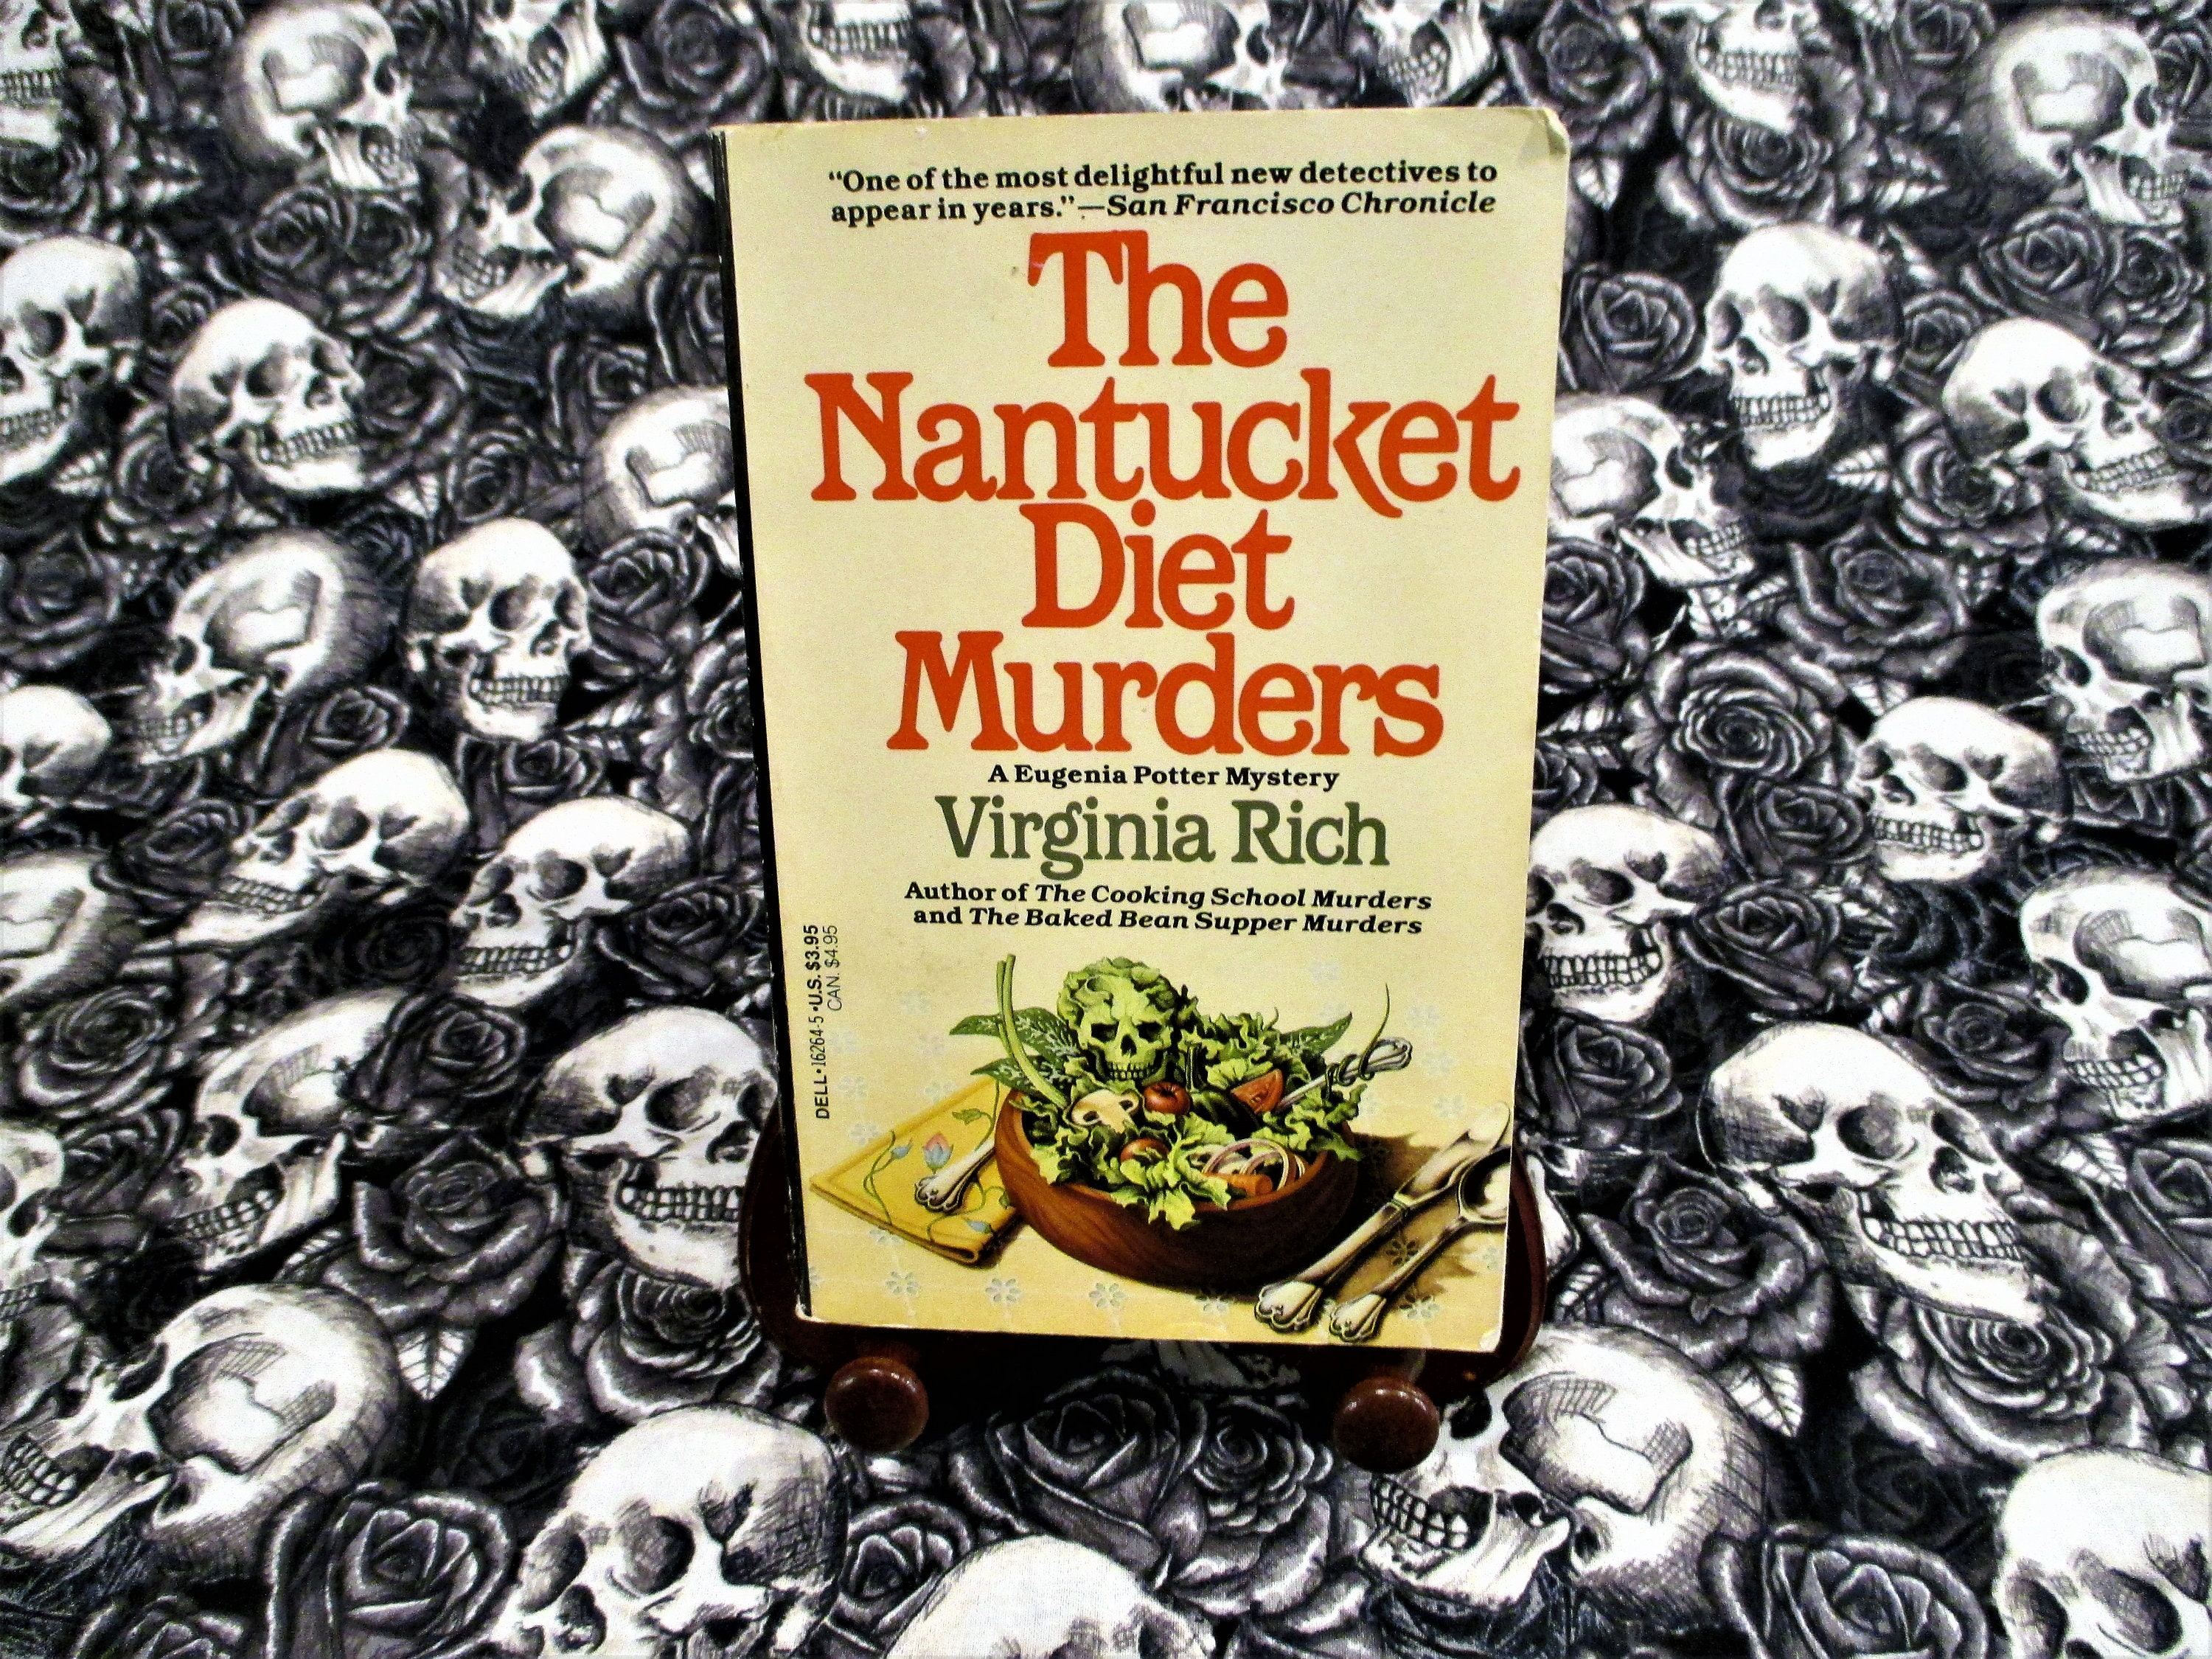 the nantucket diet murders rich virginia